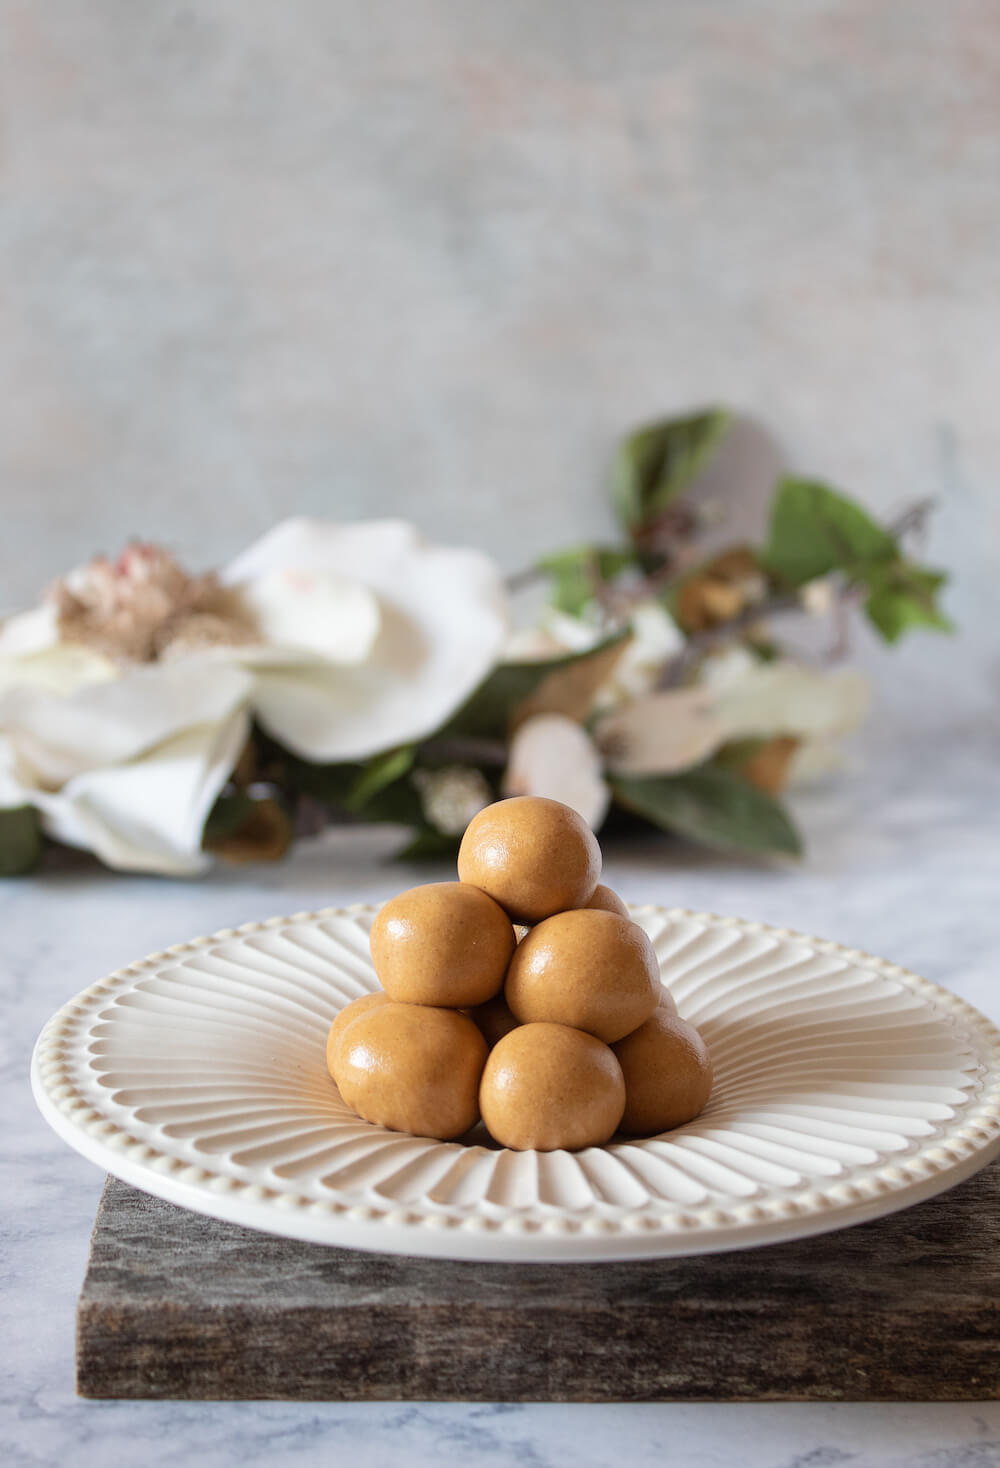 Low Carb PB Bites are a treat the whole family will enjoy